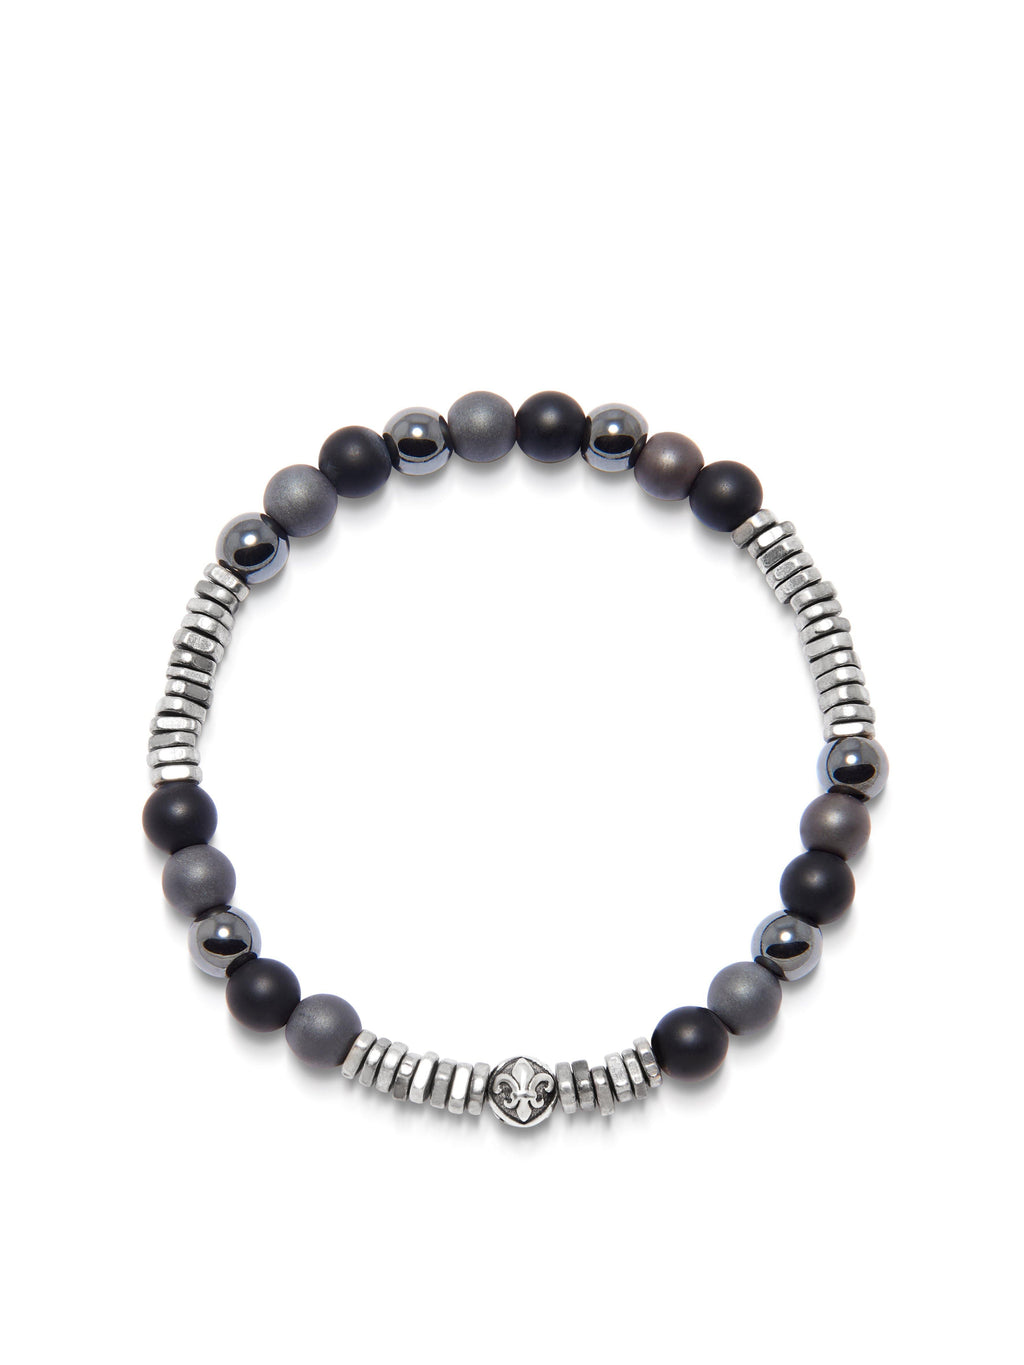 Men's Wristband with Hematite, Matte Onyx, and Silver Disc Beads